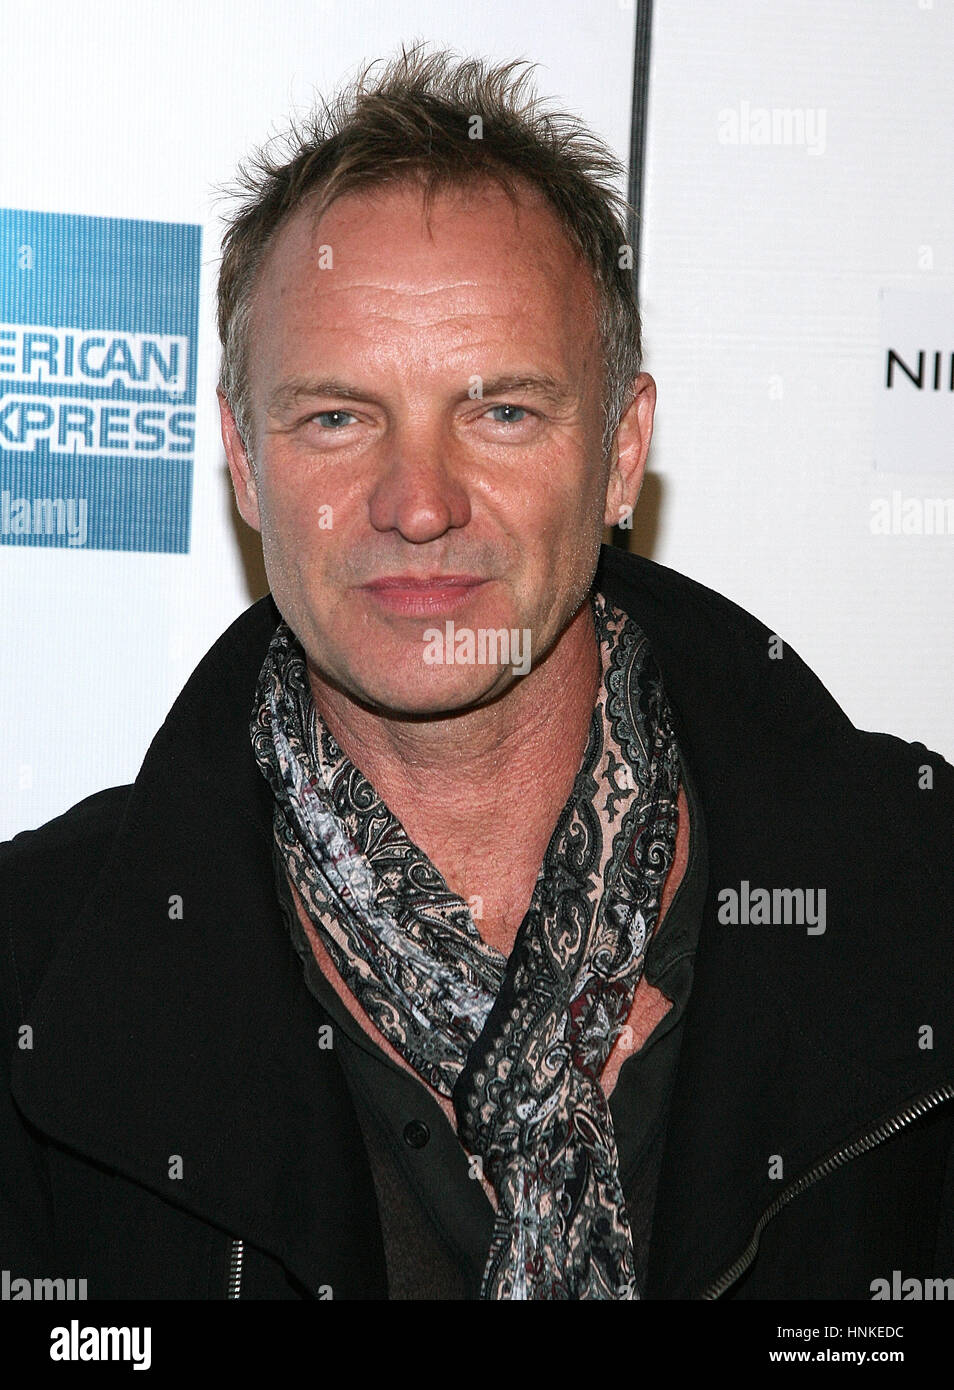 Musician Sting attends the 'Moon' premiere during the 2009 Tribeca Film Festival at the TPAC Theater on - Stock Image